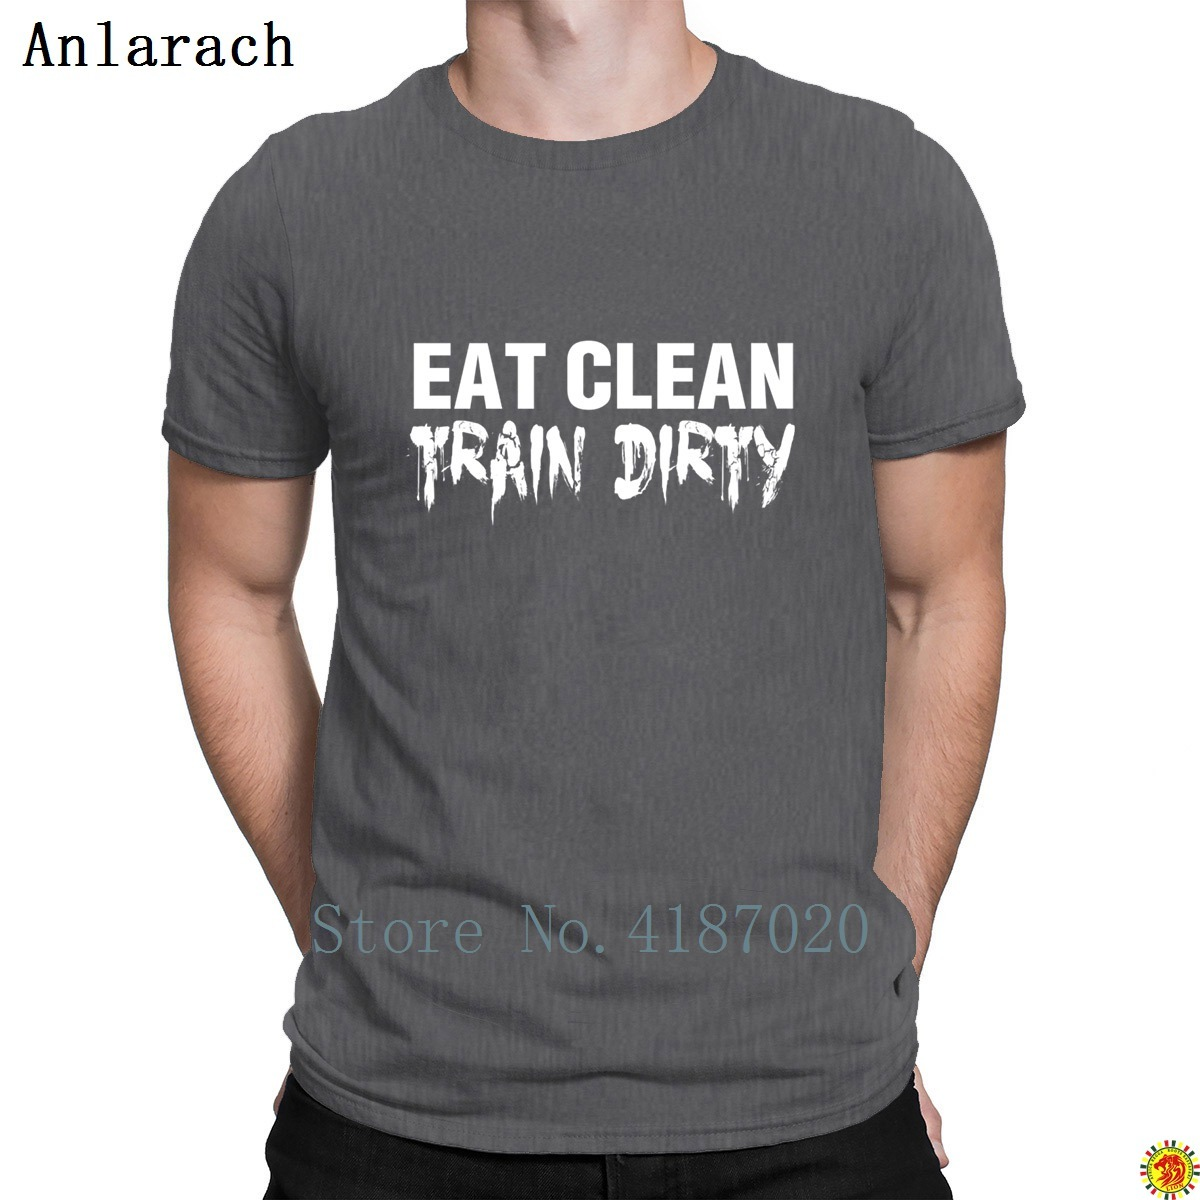 Coma Clean Train Dirty Tshirt Better Basic Solid Envío Gratis Summer Men's Tshirt Carta de diseñador Fitted Round Collar